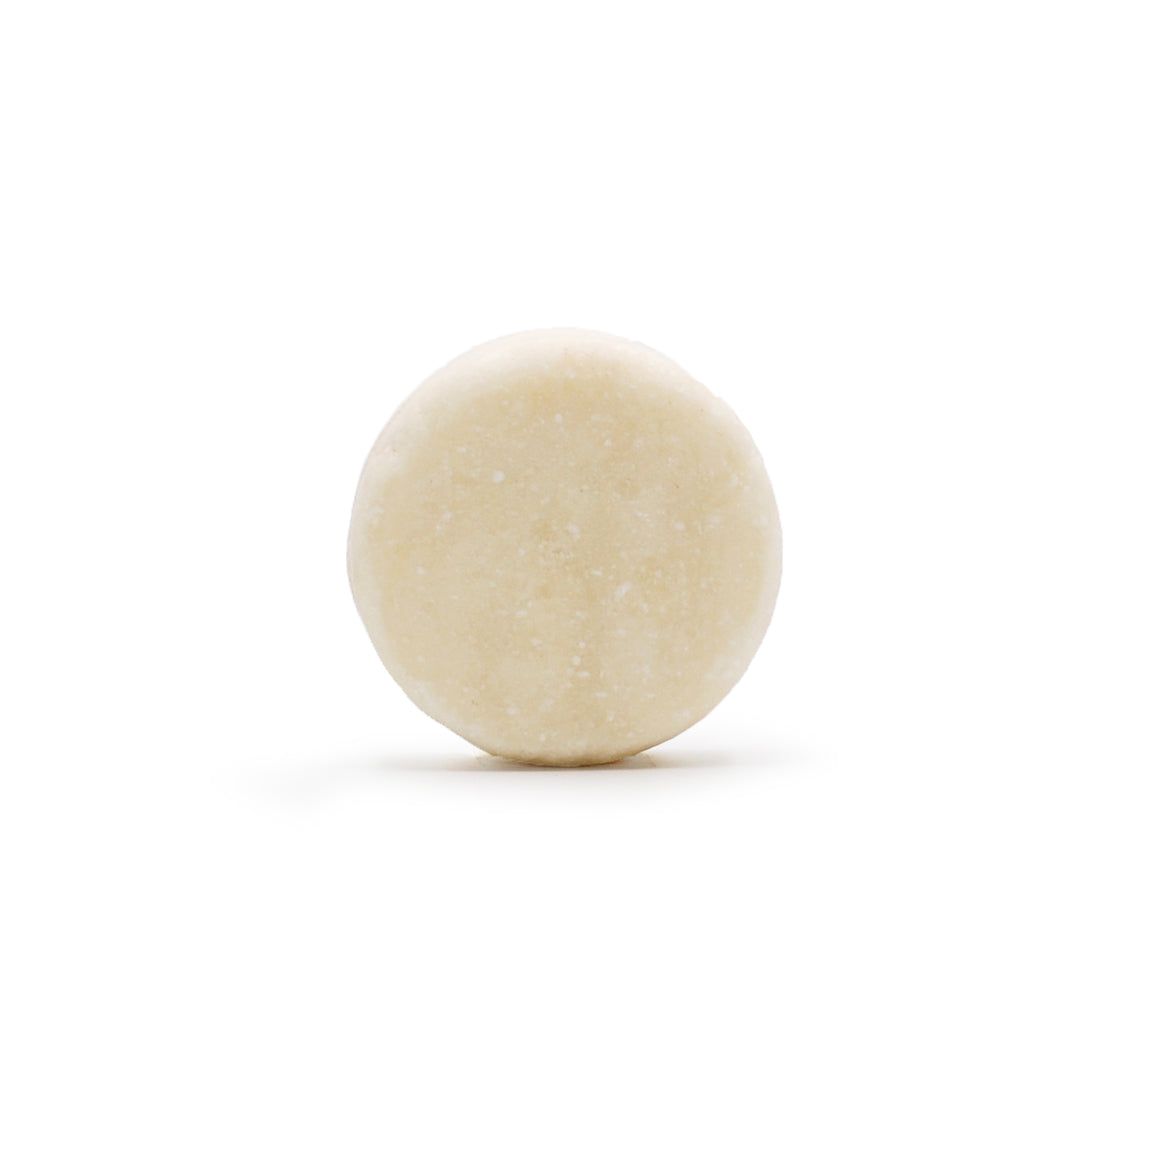 Shampoo Bar - Oat Milk & Honey